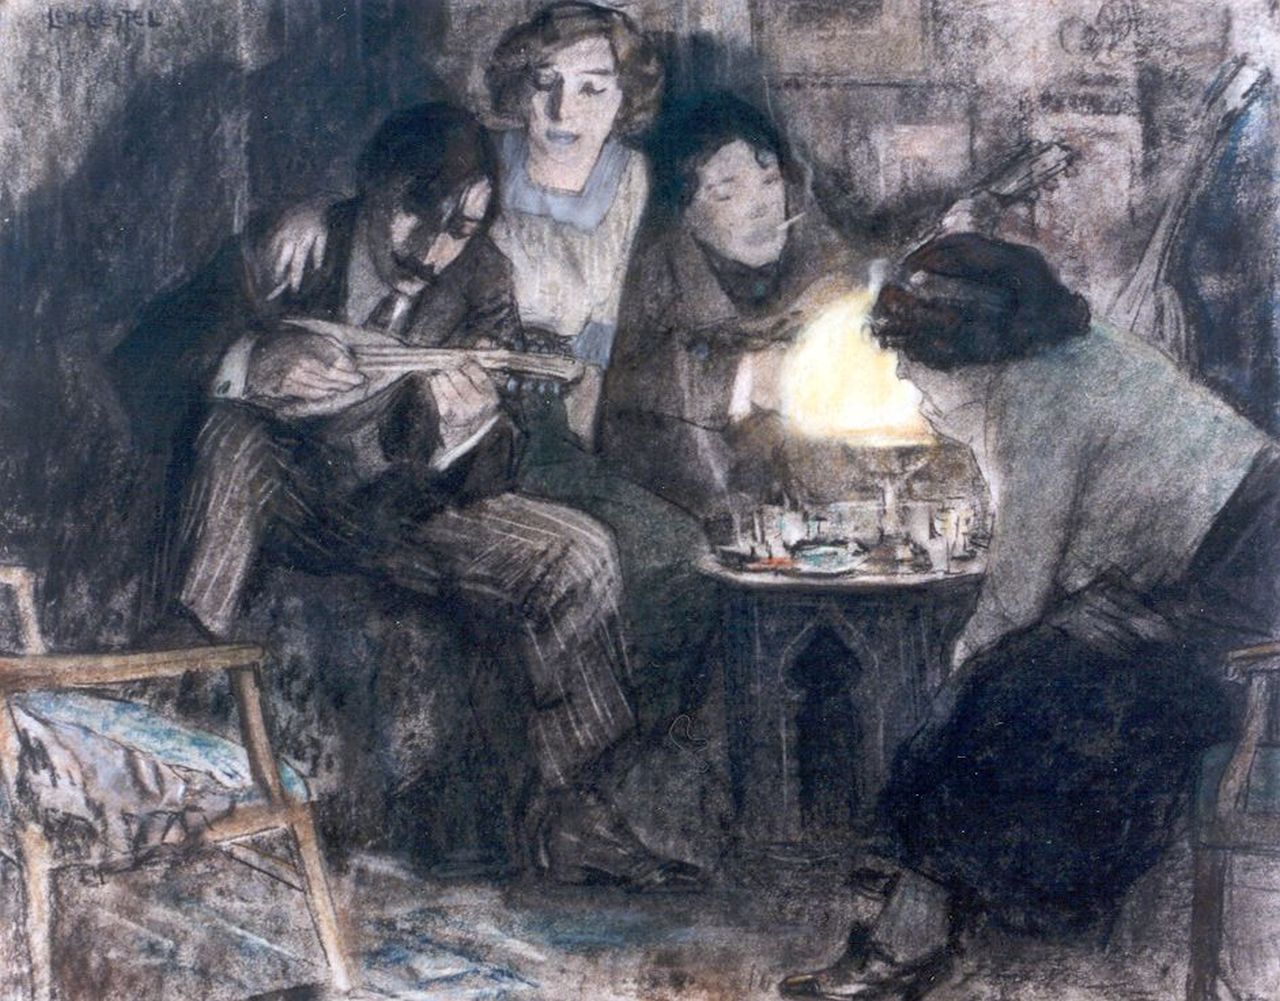 Gestel L.  | Leendert 'Leo' Gestel, Having a party at the Boendermaker's house, pastel on paper 37.0 x 46.2 cm, signed u.l. and dated 1910